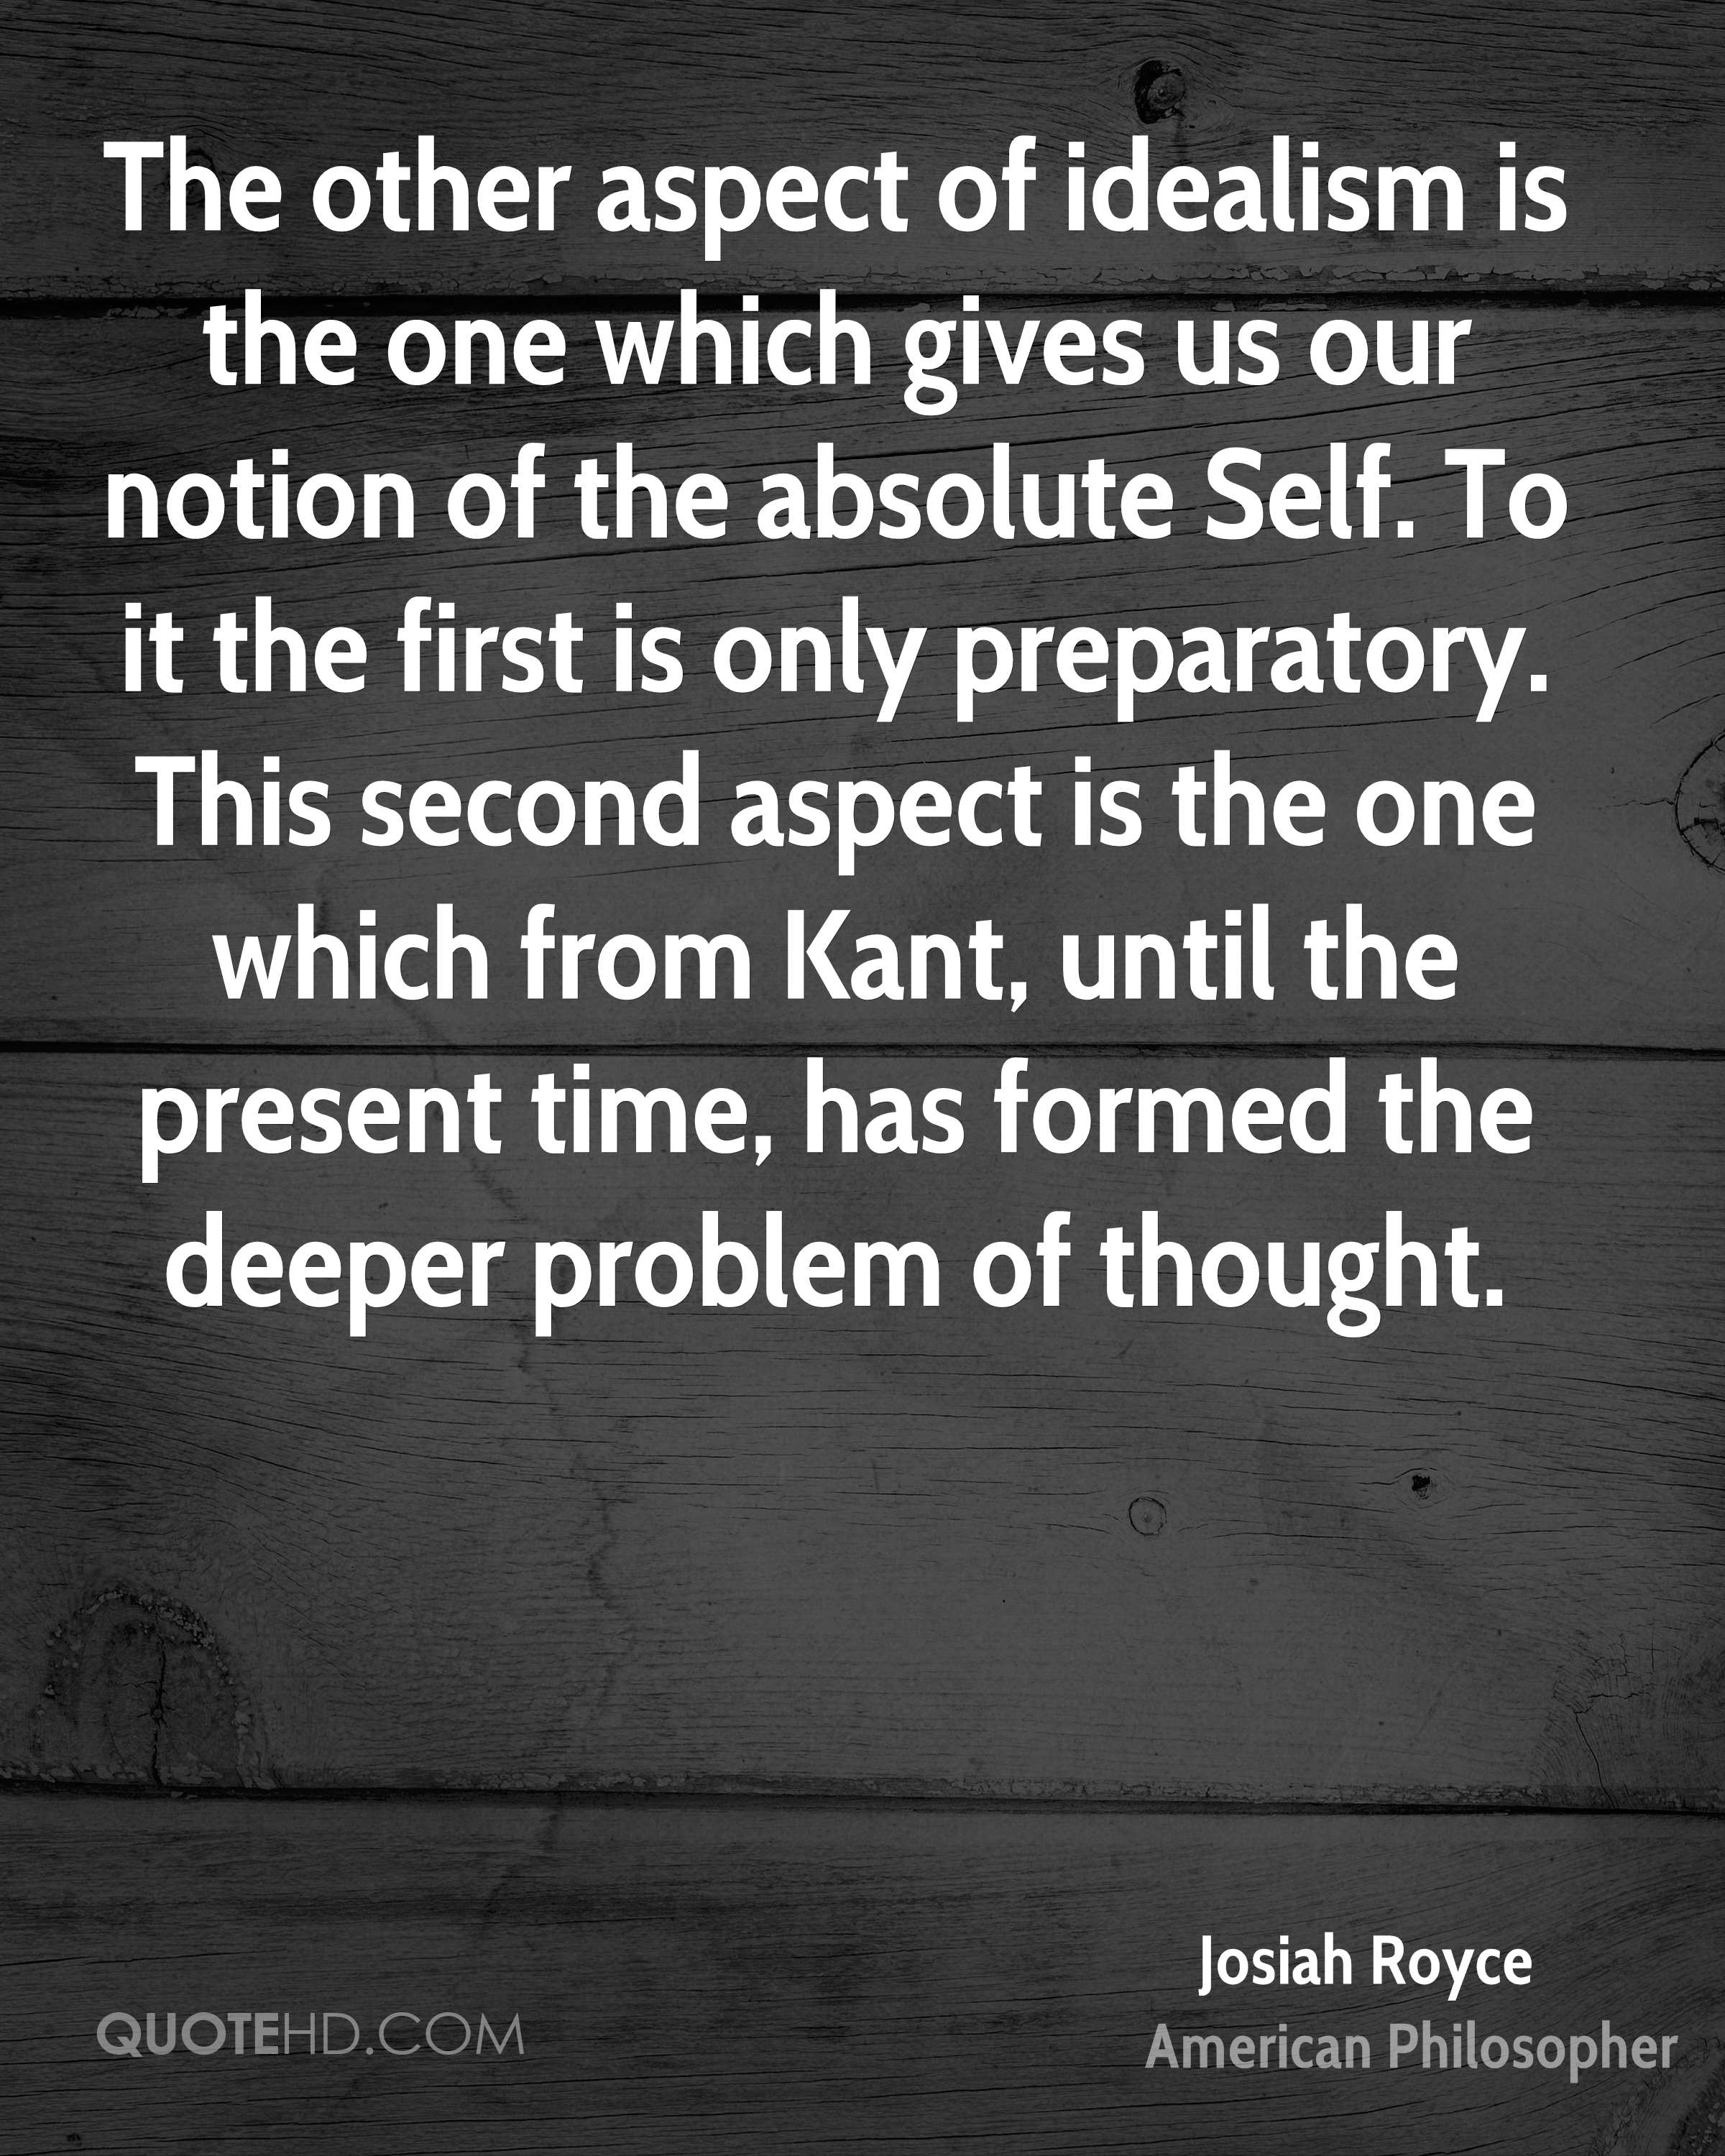 The other aspect of idealism is the one which gives us our notion of the absolute Self. To it the first is only preparatory. This second aspect is the one which from Kant, until the present time, has formed the deeper problem of thought.